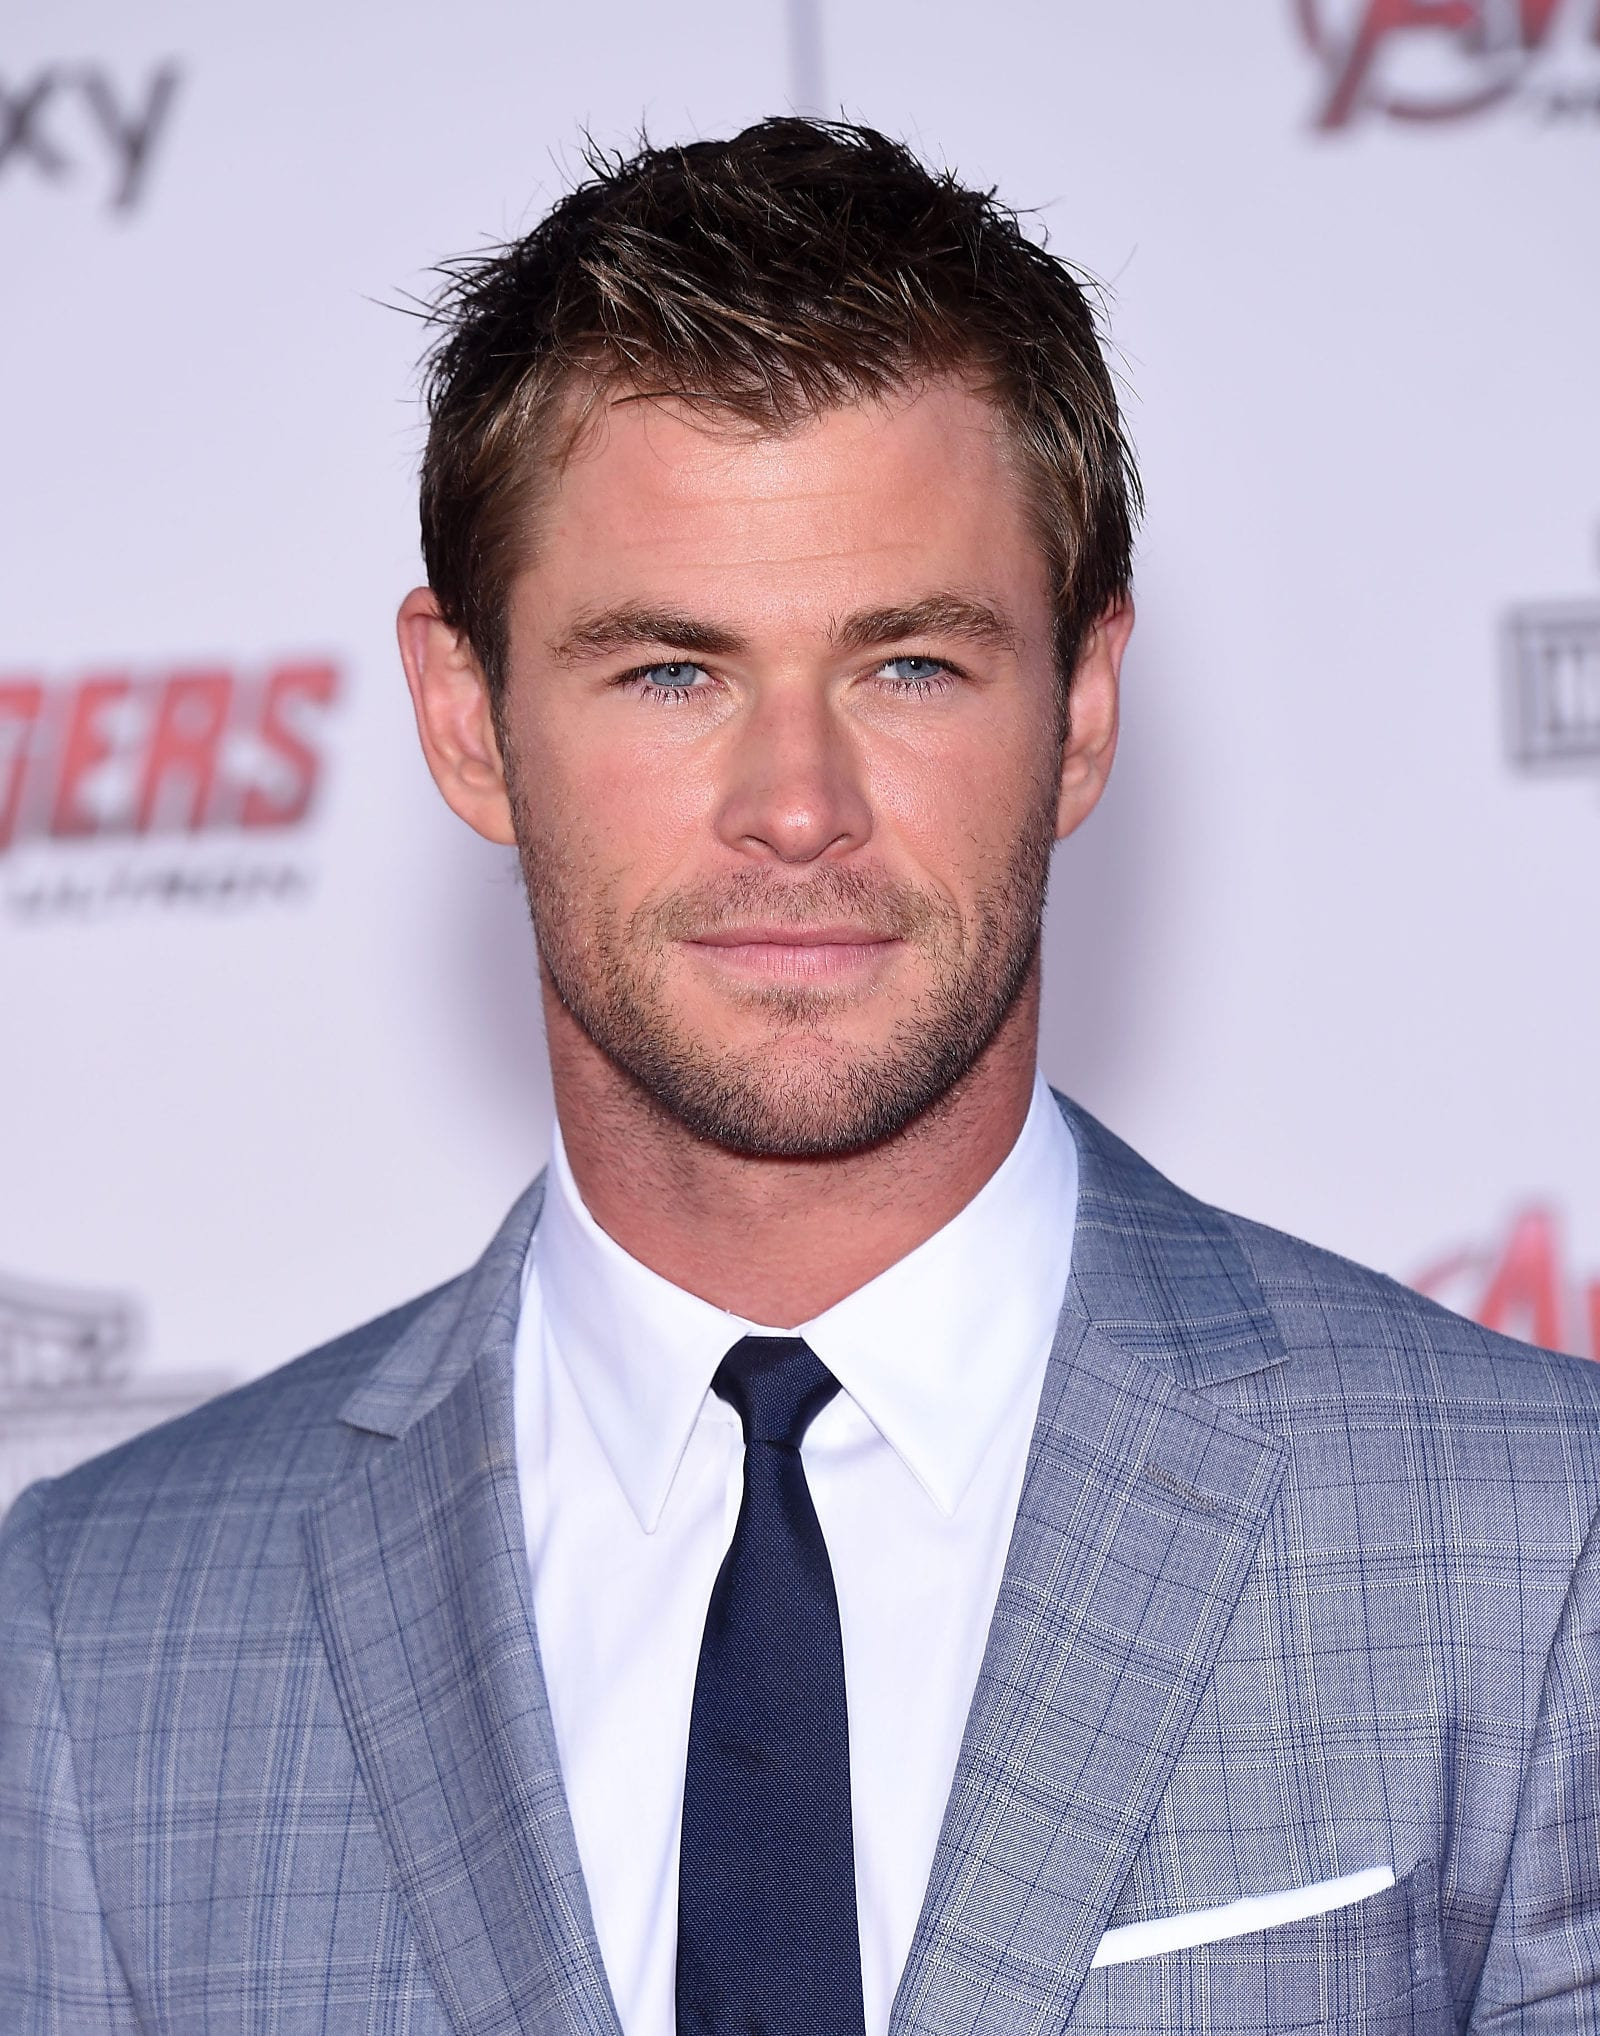 Chris Hemsworth Widows Peak Short Spiky Hairstyle